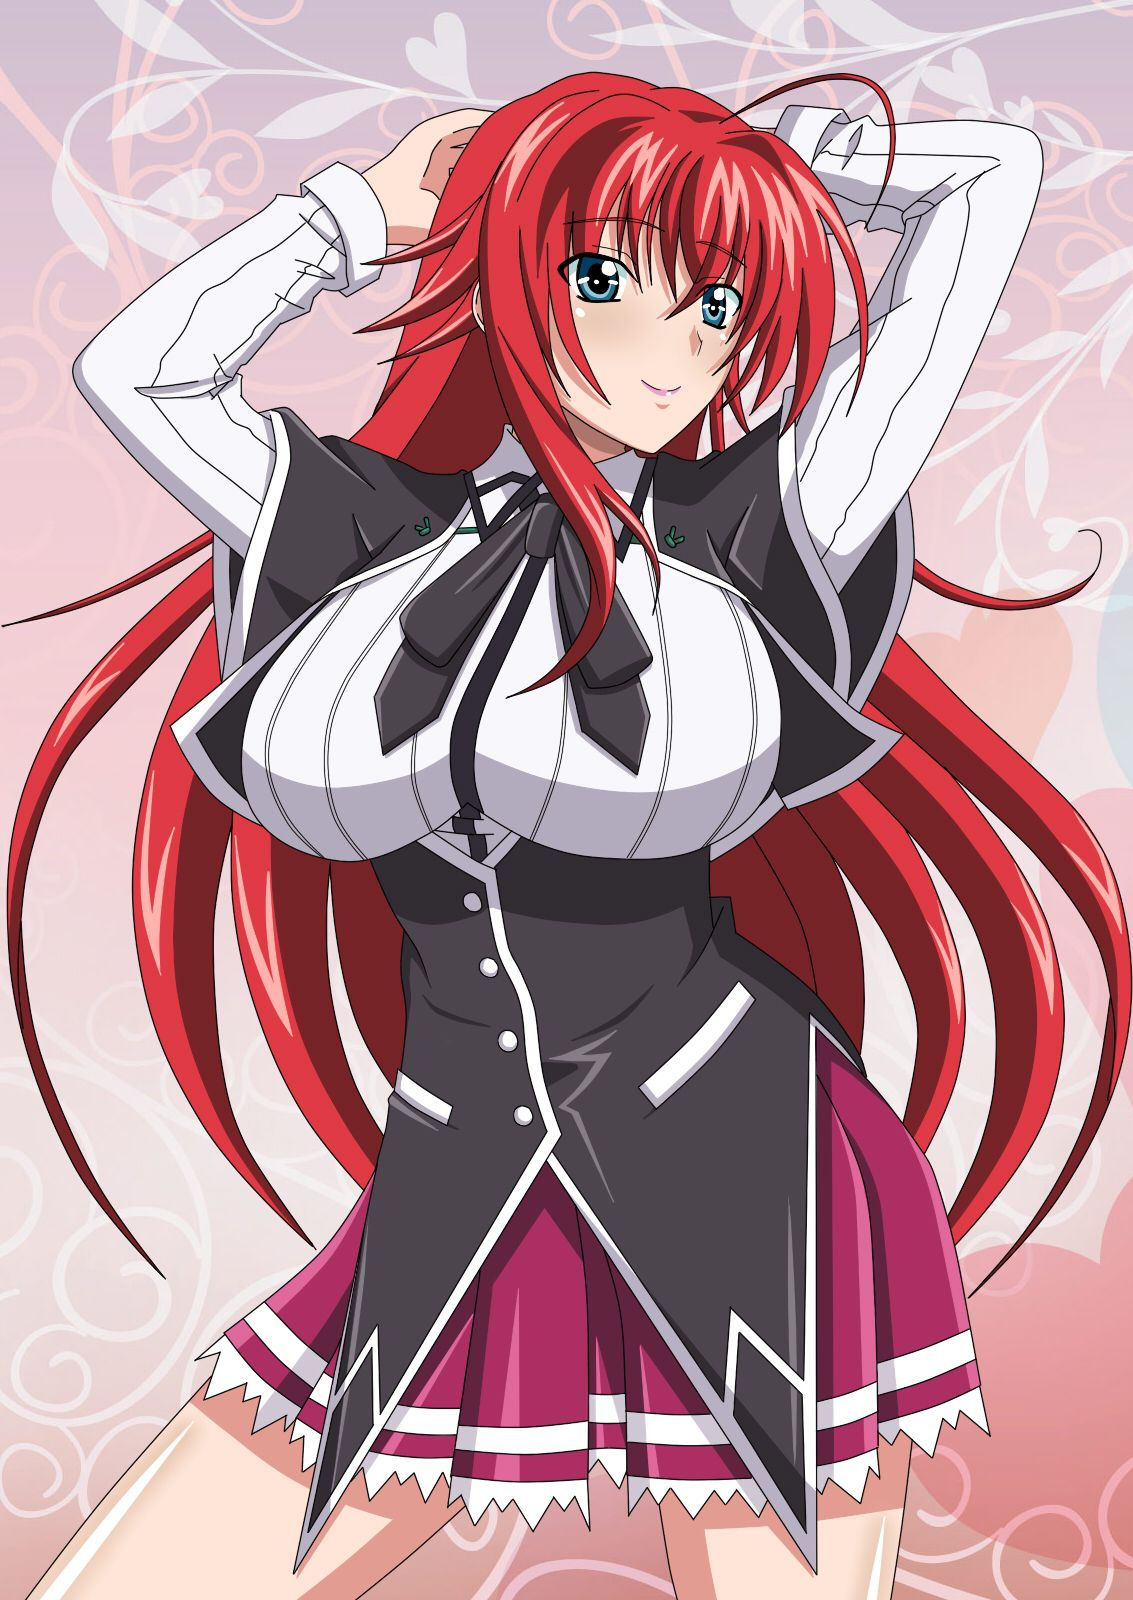 Rias Gremory | リアスグレモリー | Pinterest | Anime high school ...